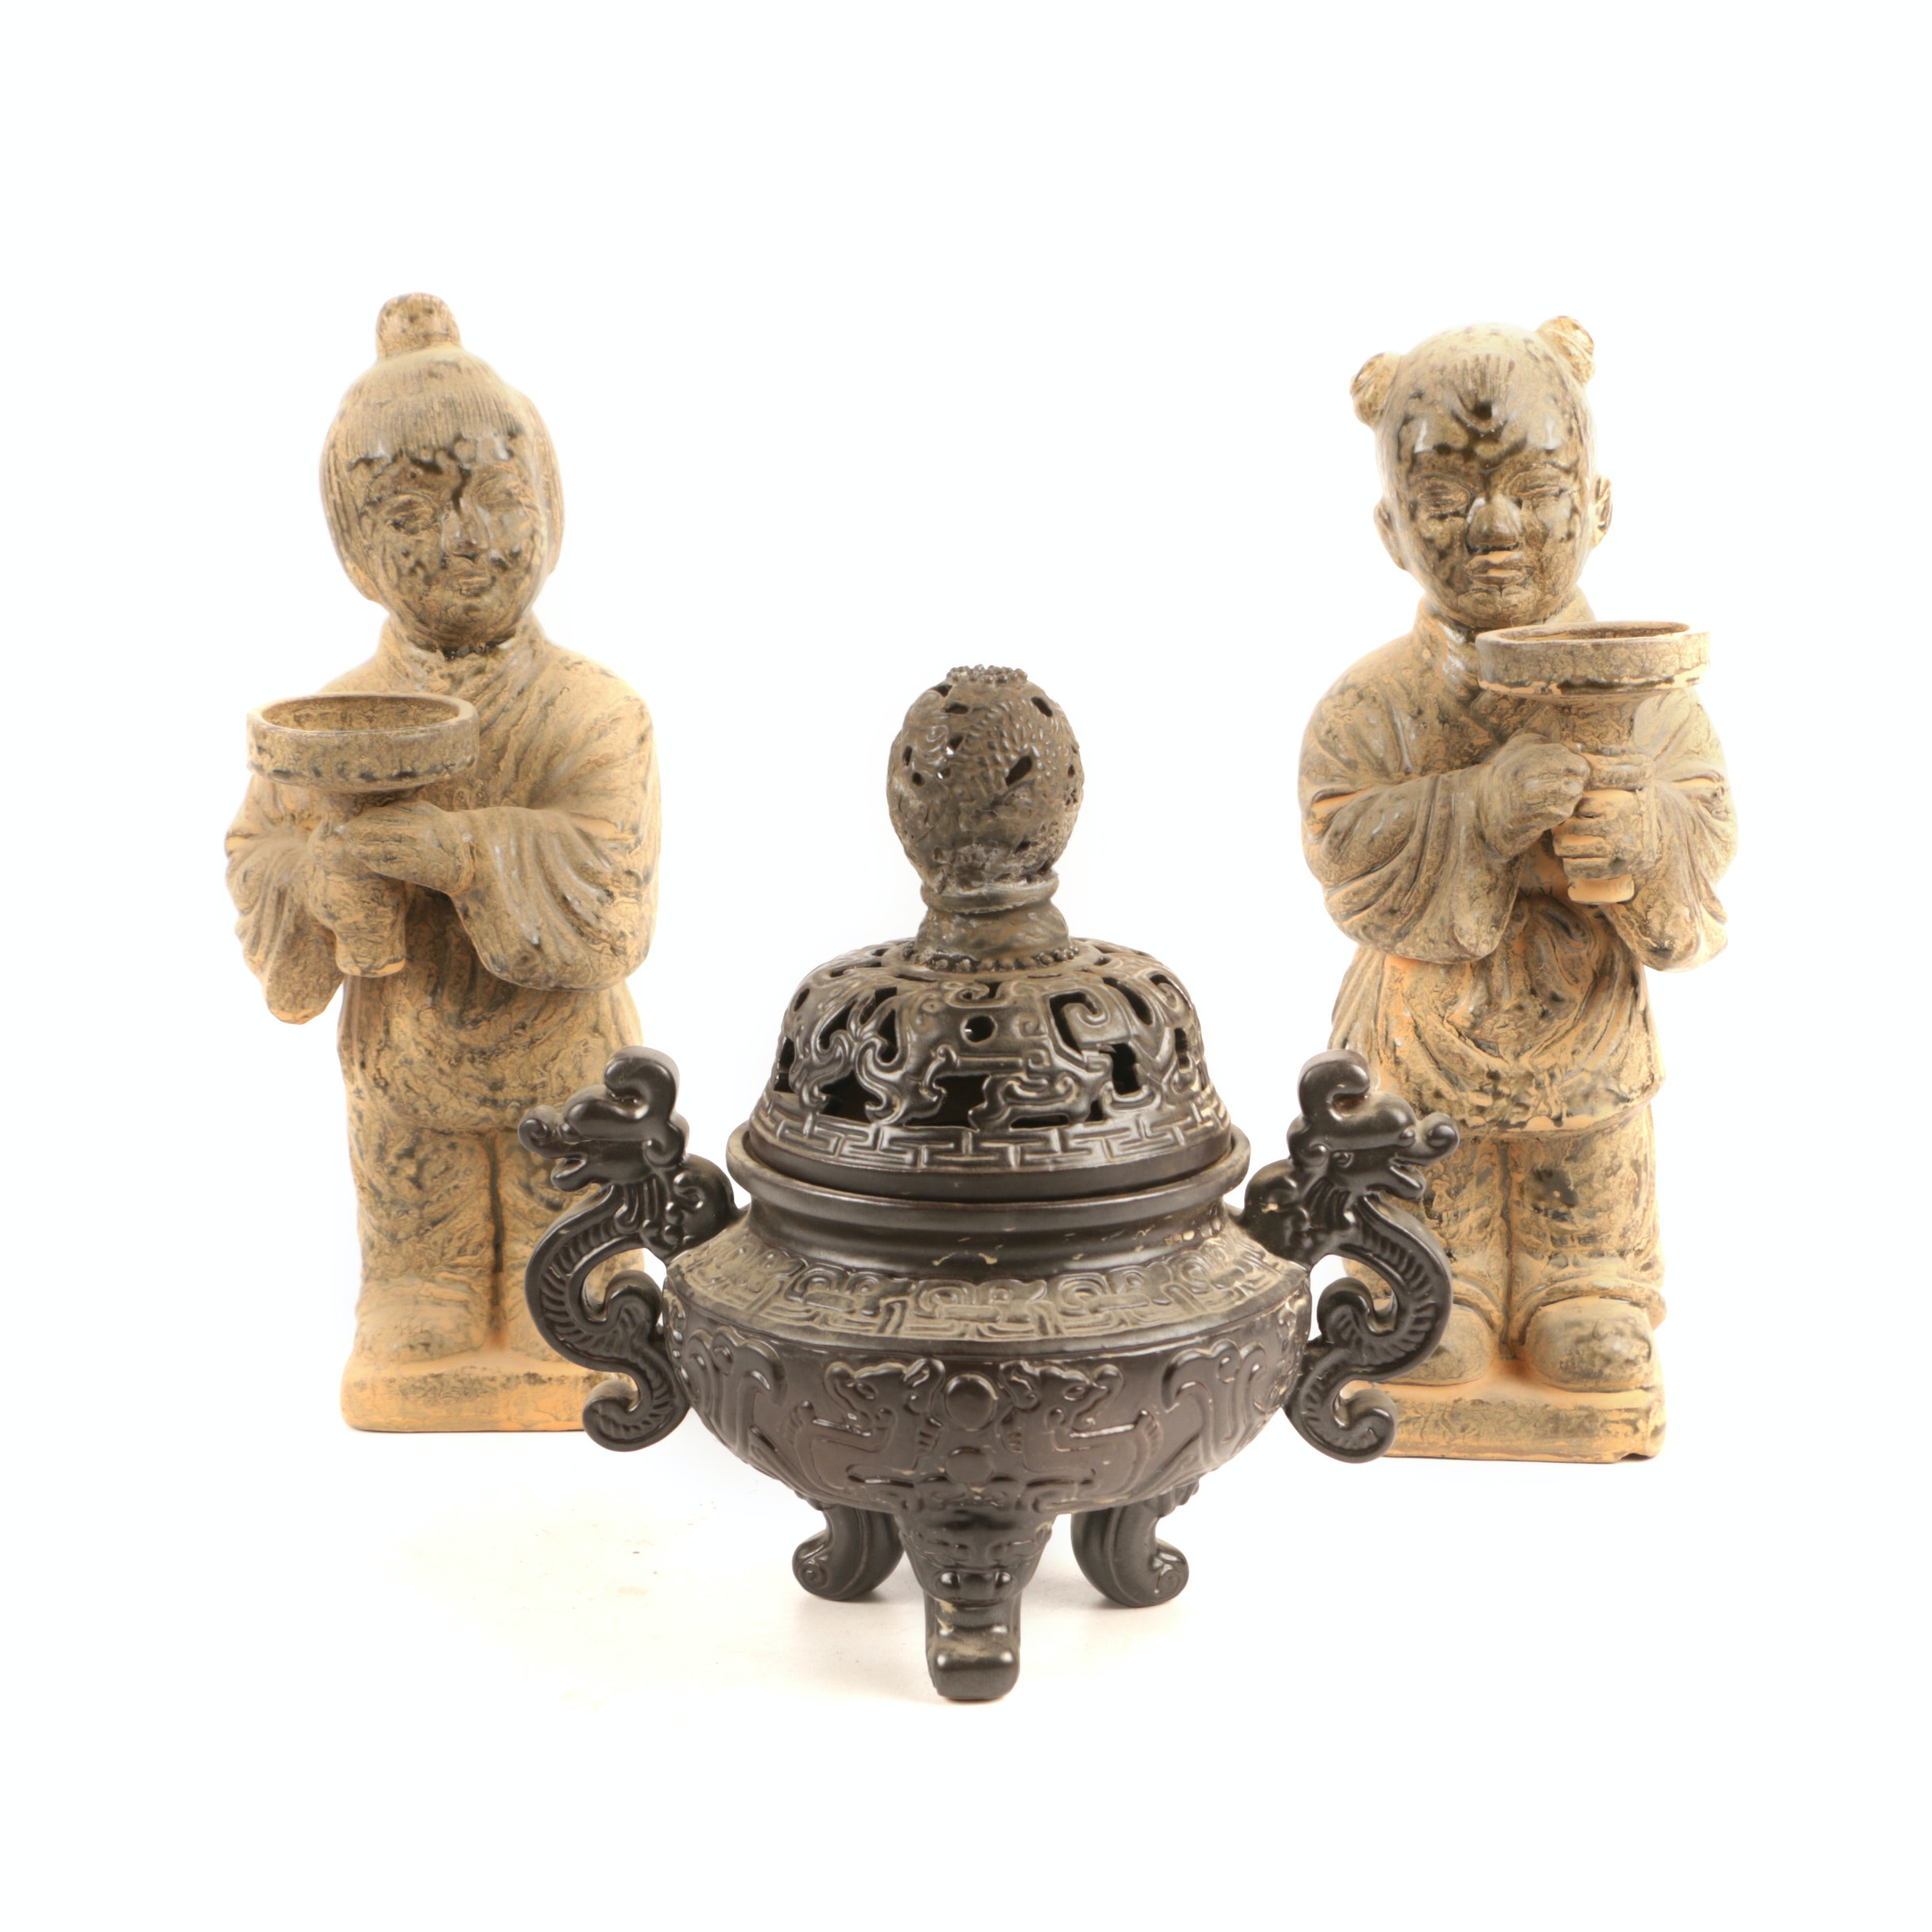 Chinese Reticulated Ceramic Censer with Dragon Motifs and Figurines